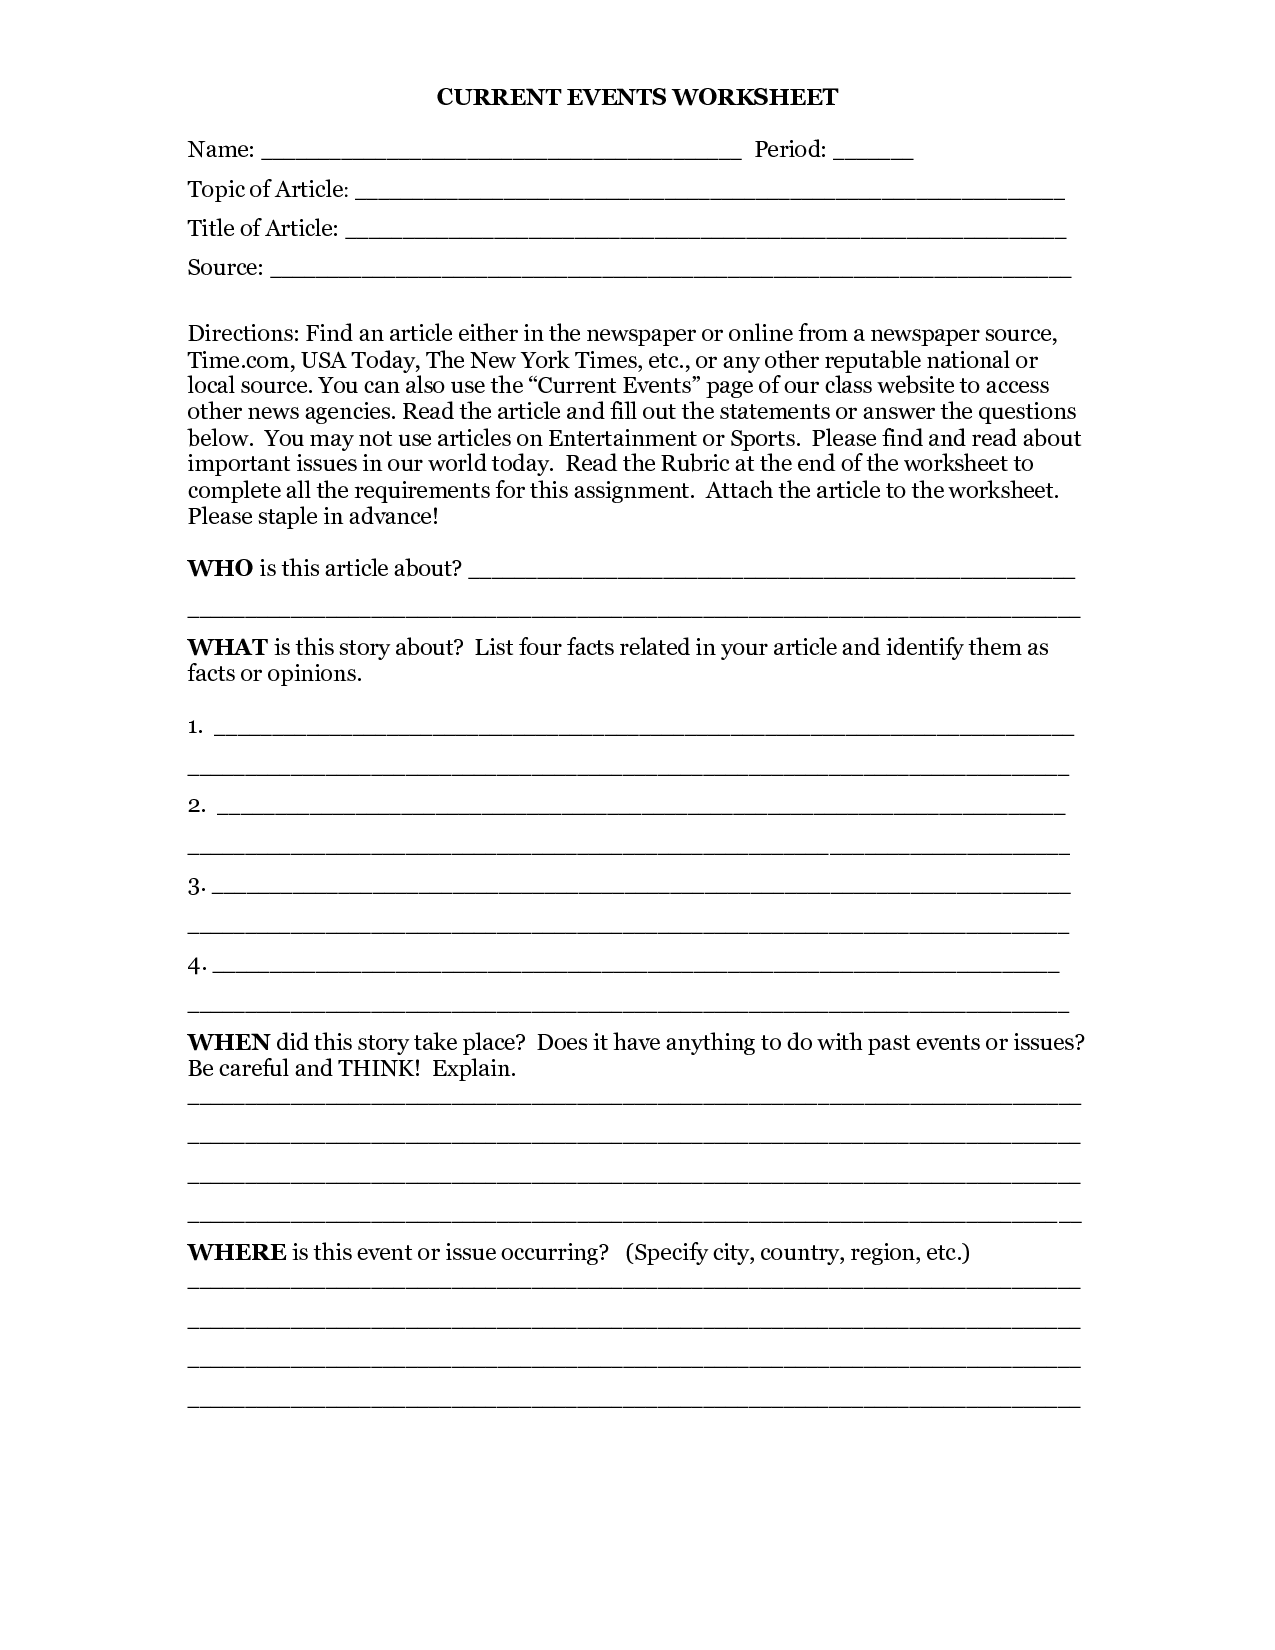 18 Best Images Of Current Events Worksheet Template